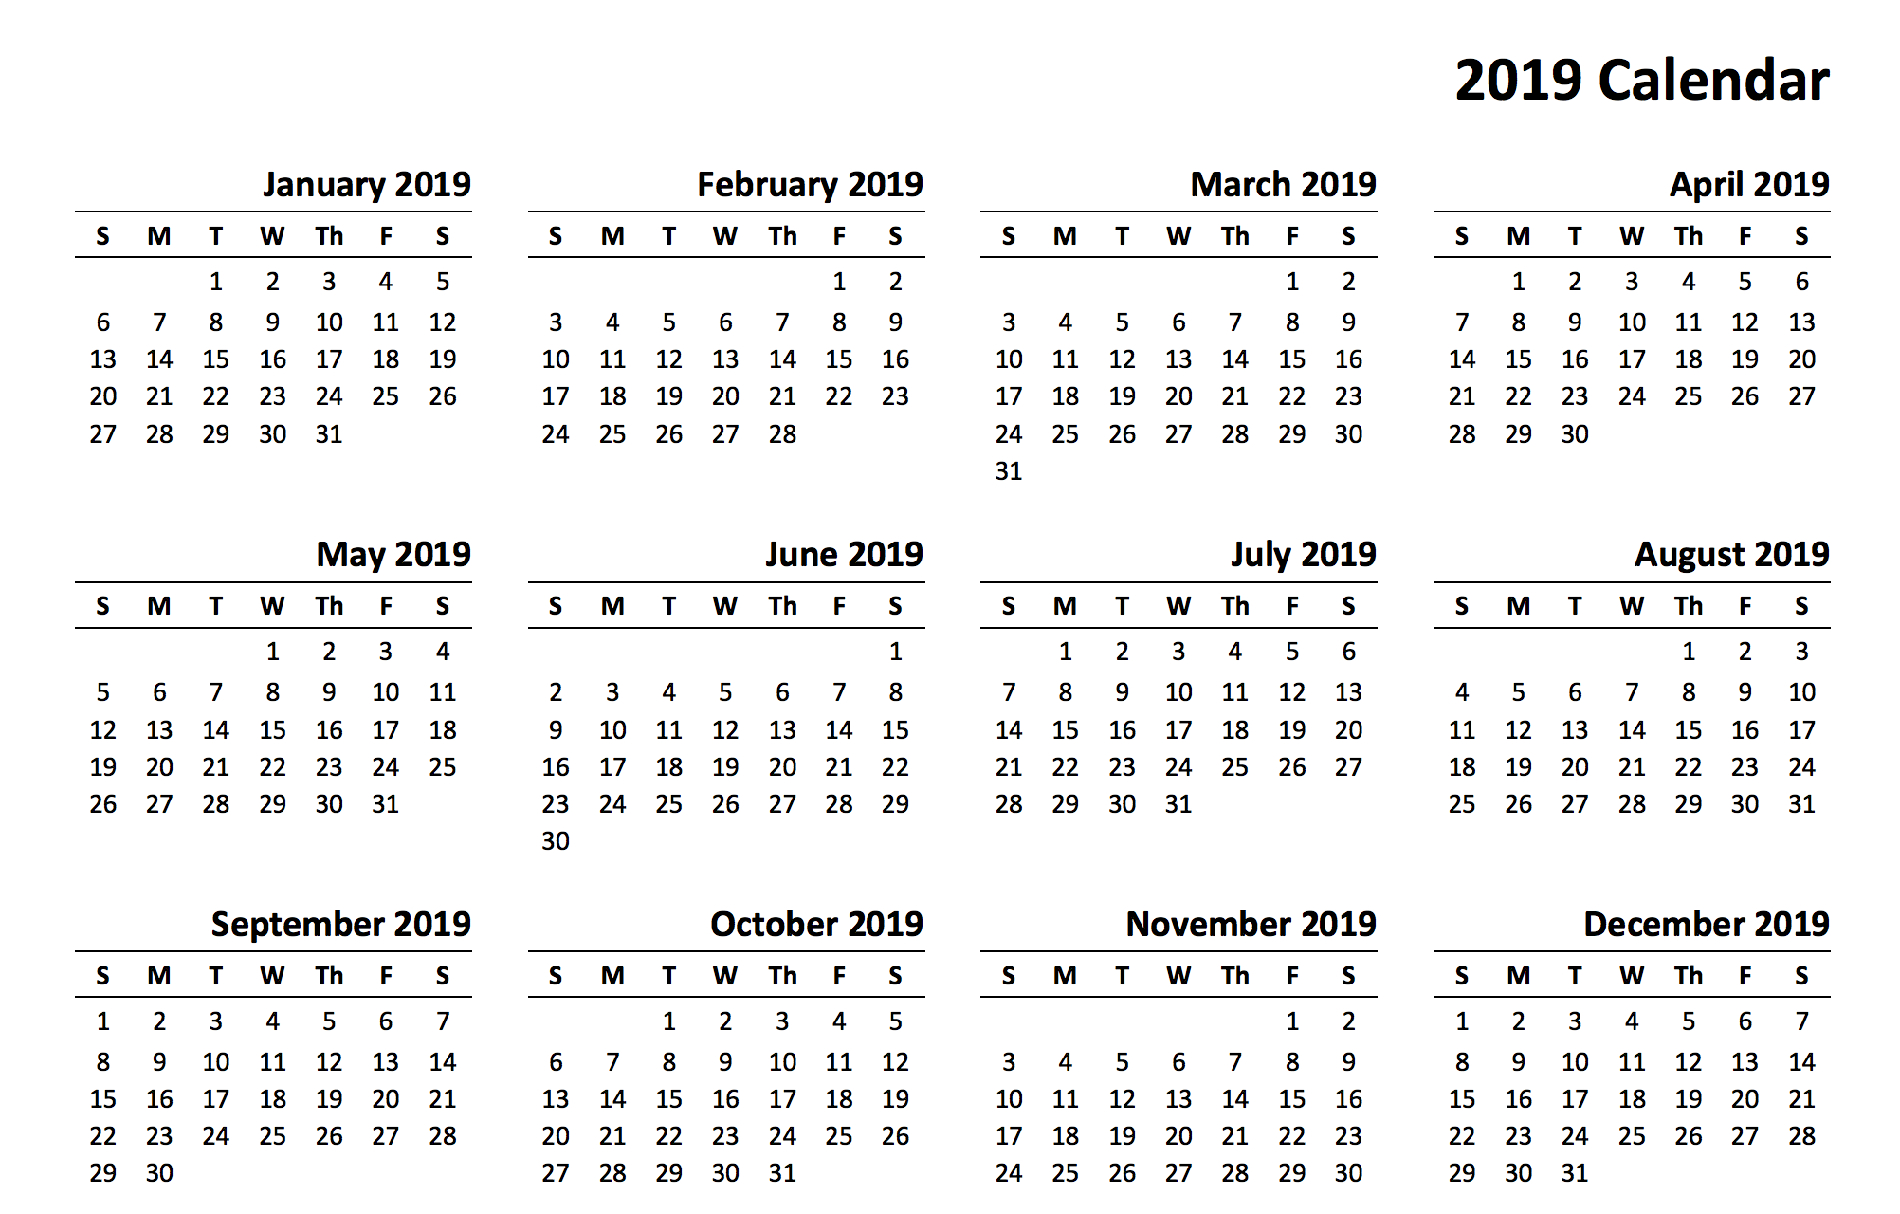 2019 Calendar With 12 Month Template To Print - Printable Monthly pertaining to Blank Printable Calendar 12 Month